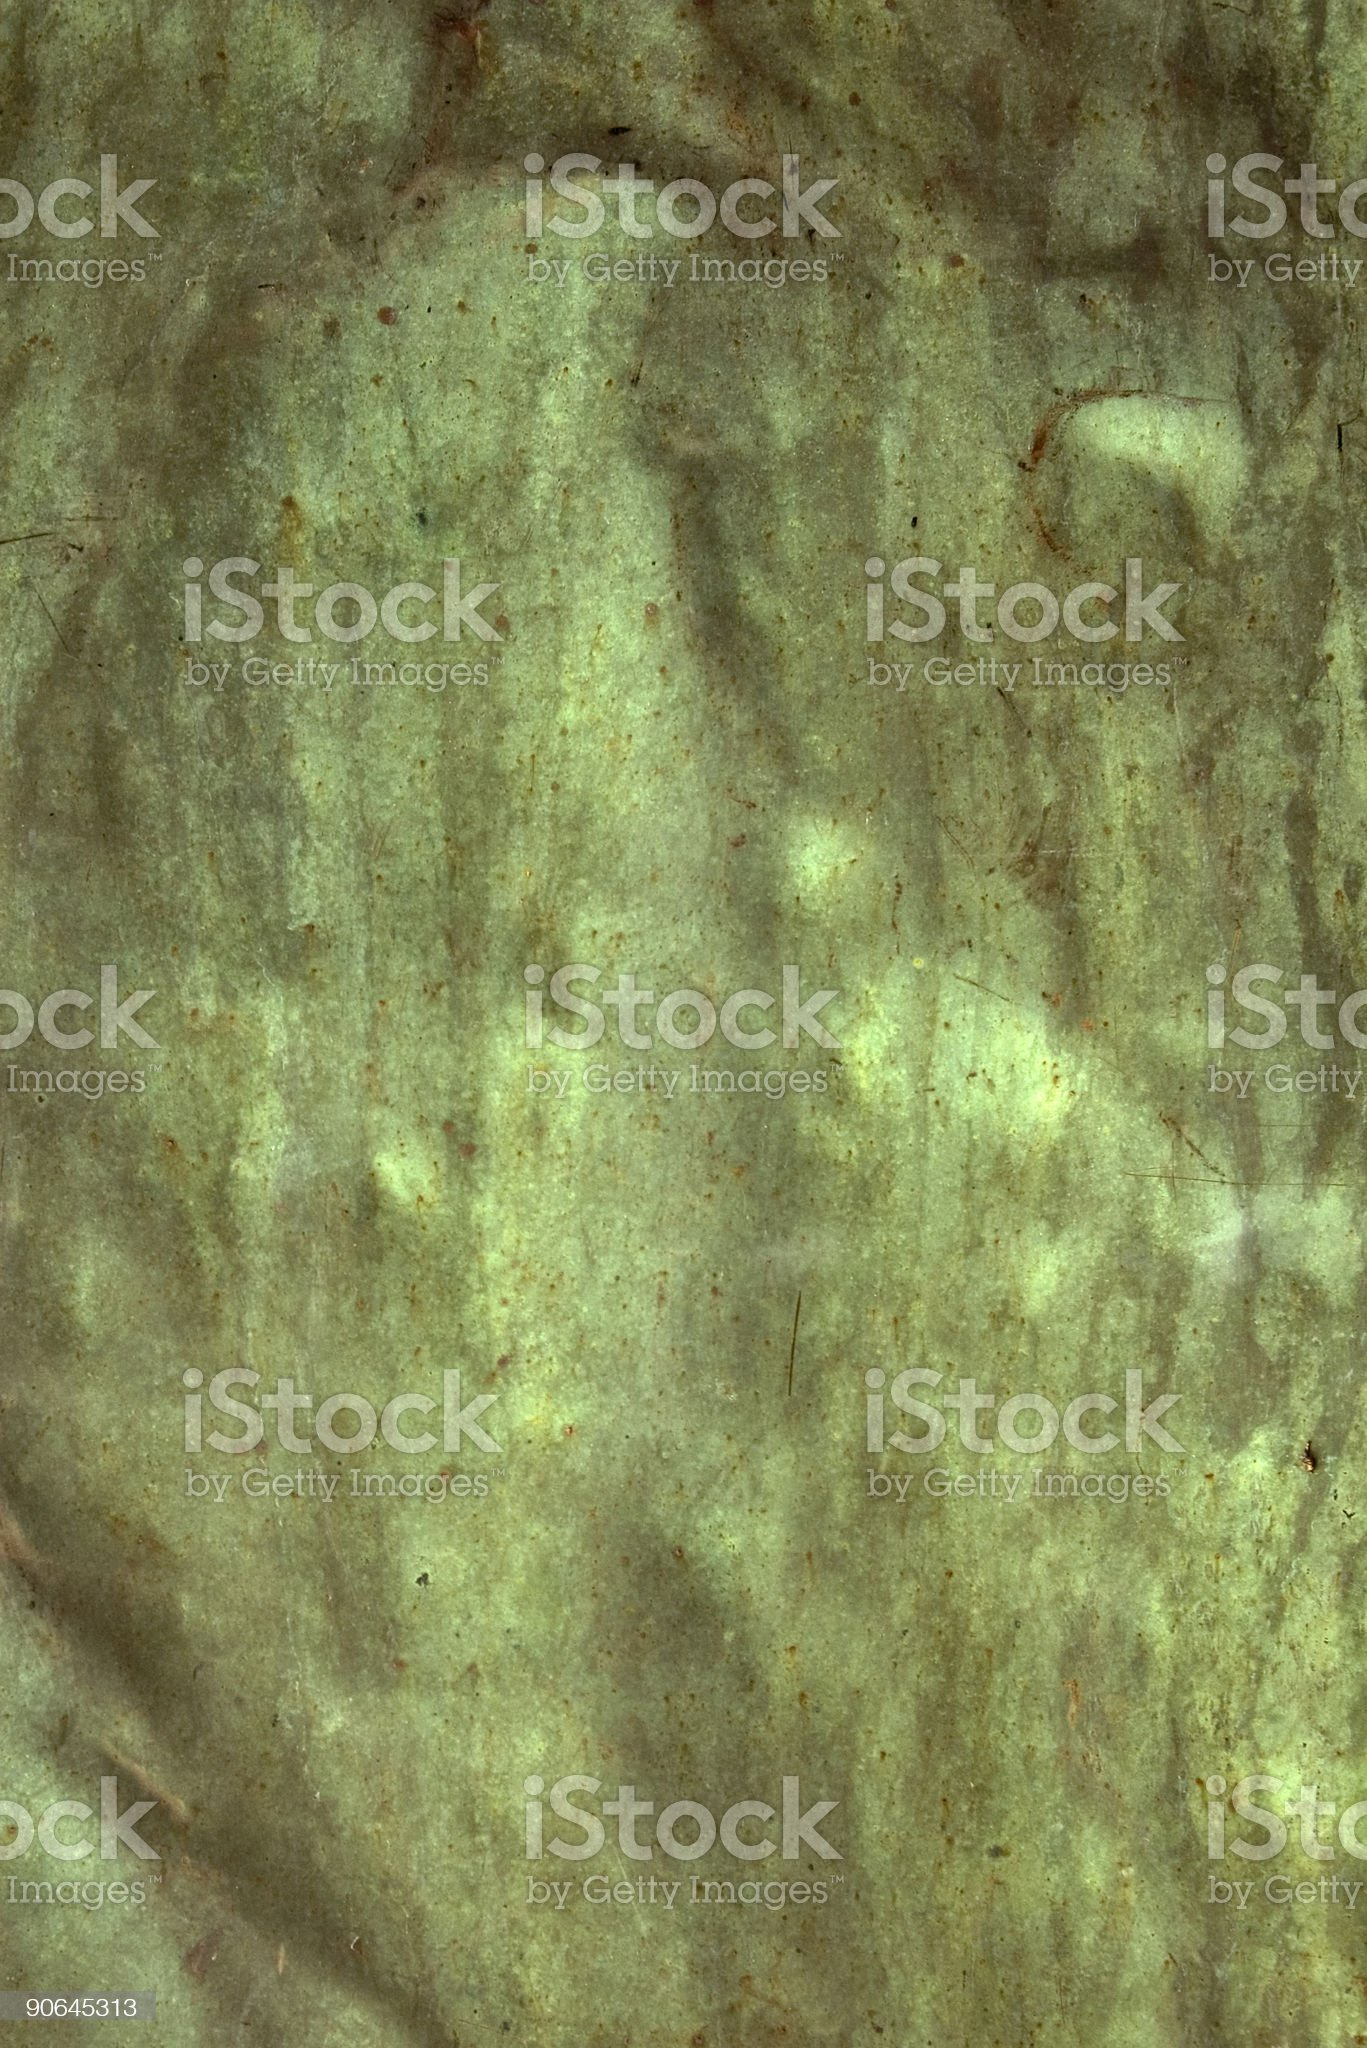 Copper Sheet royalty-free stock photo